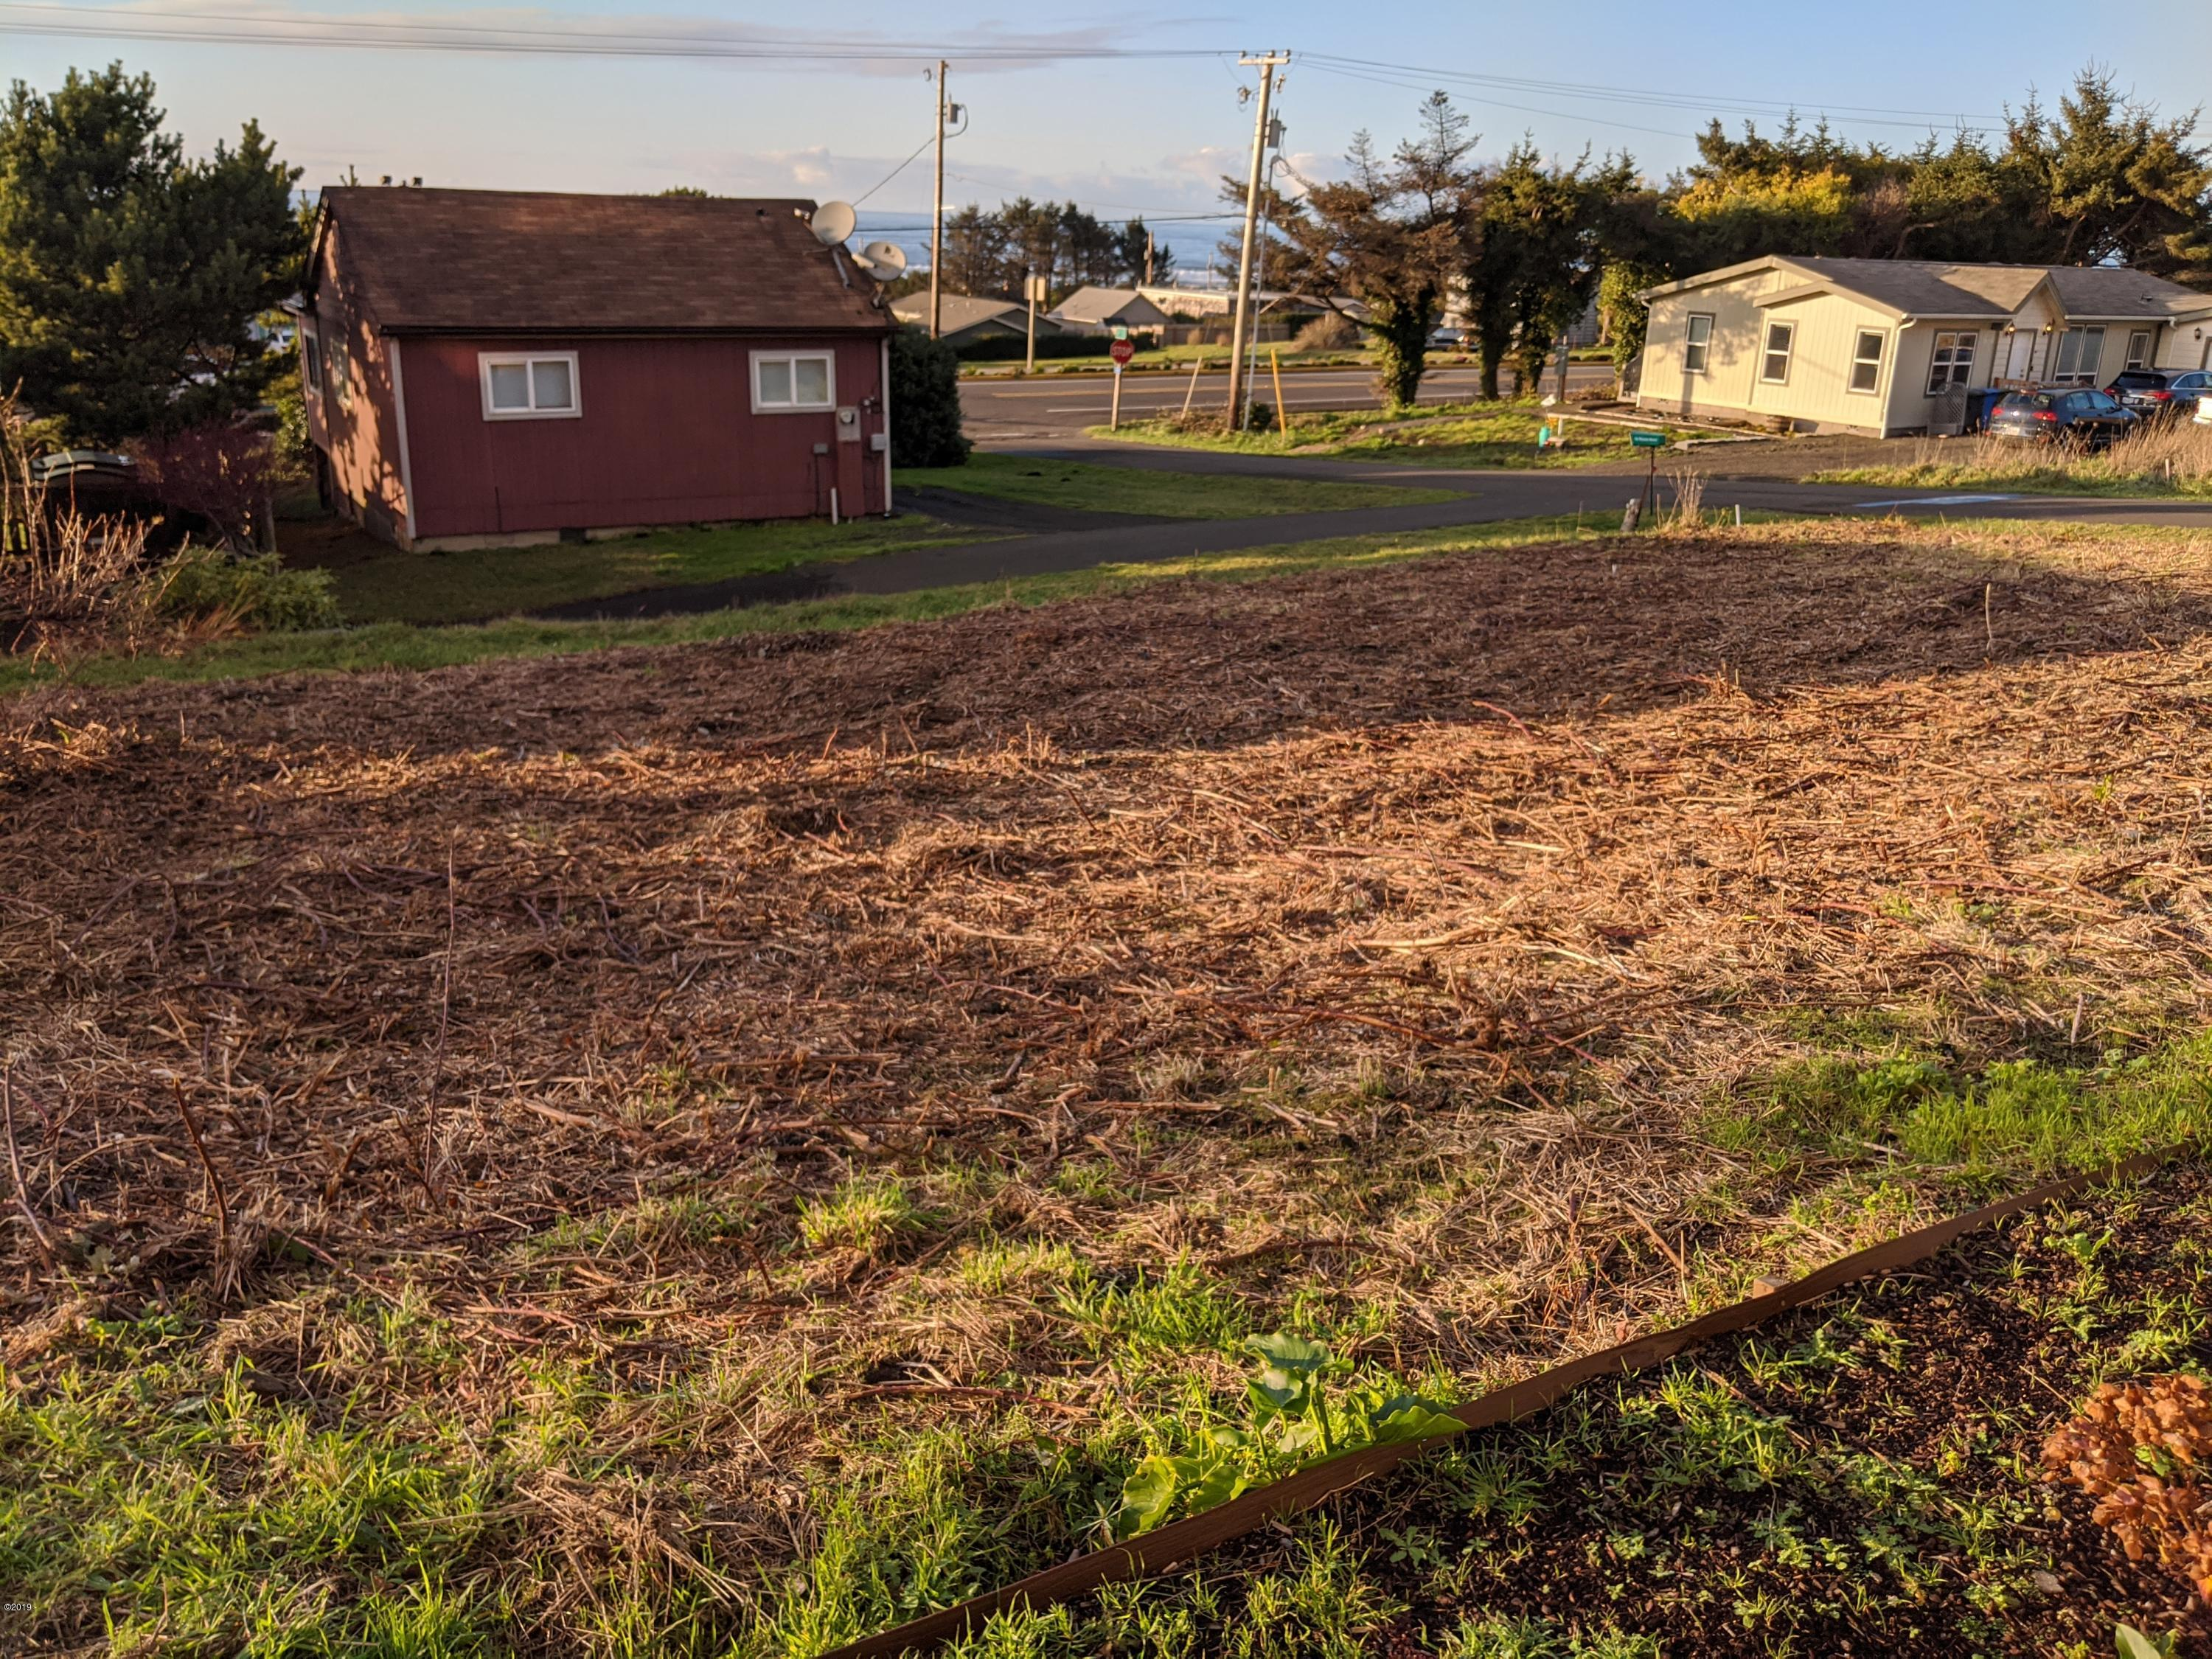 48 E 8th St, Yachats, OR 97498 - IMG_20191223_153800